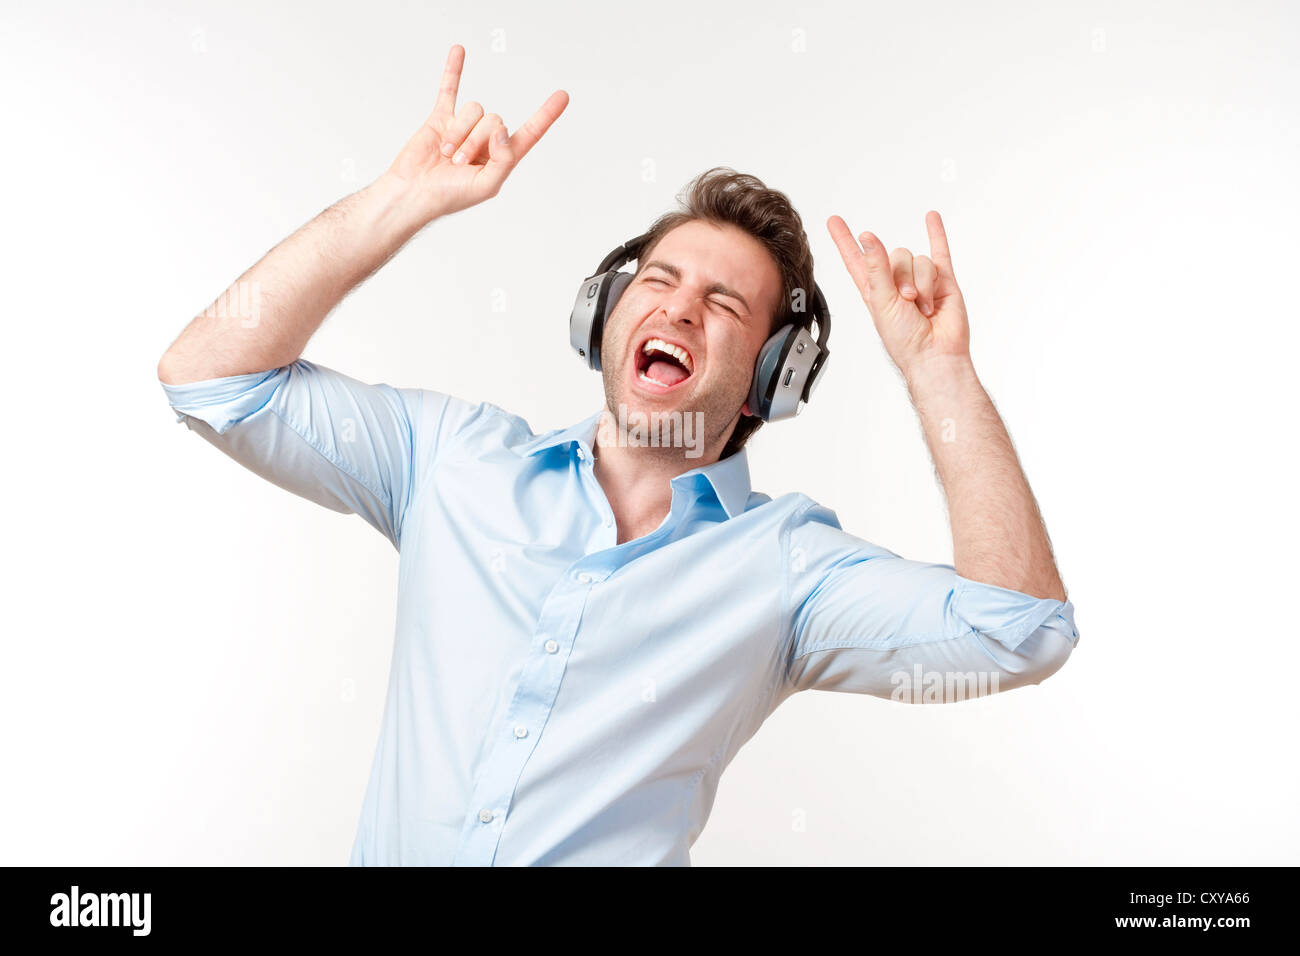 excited man in blue shirt with earphones listening to music - Stock Image